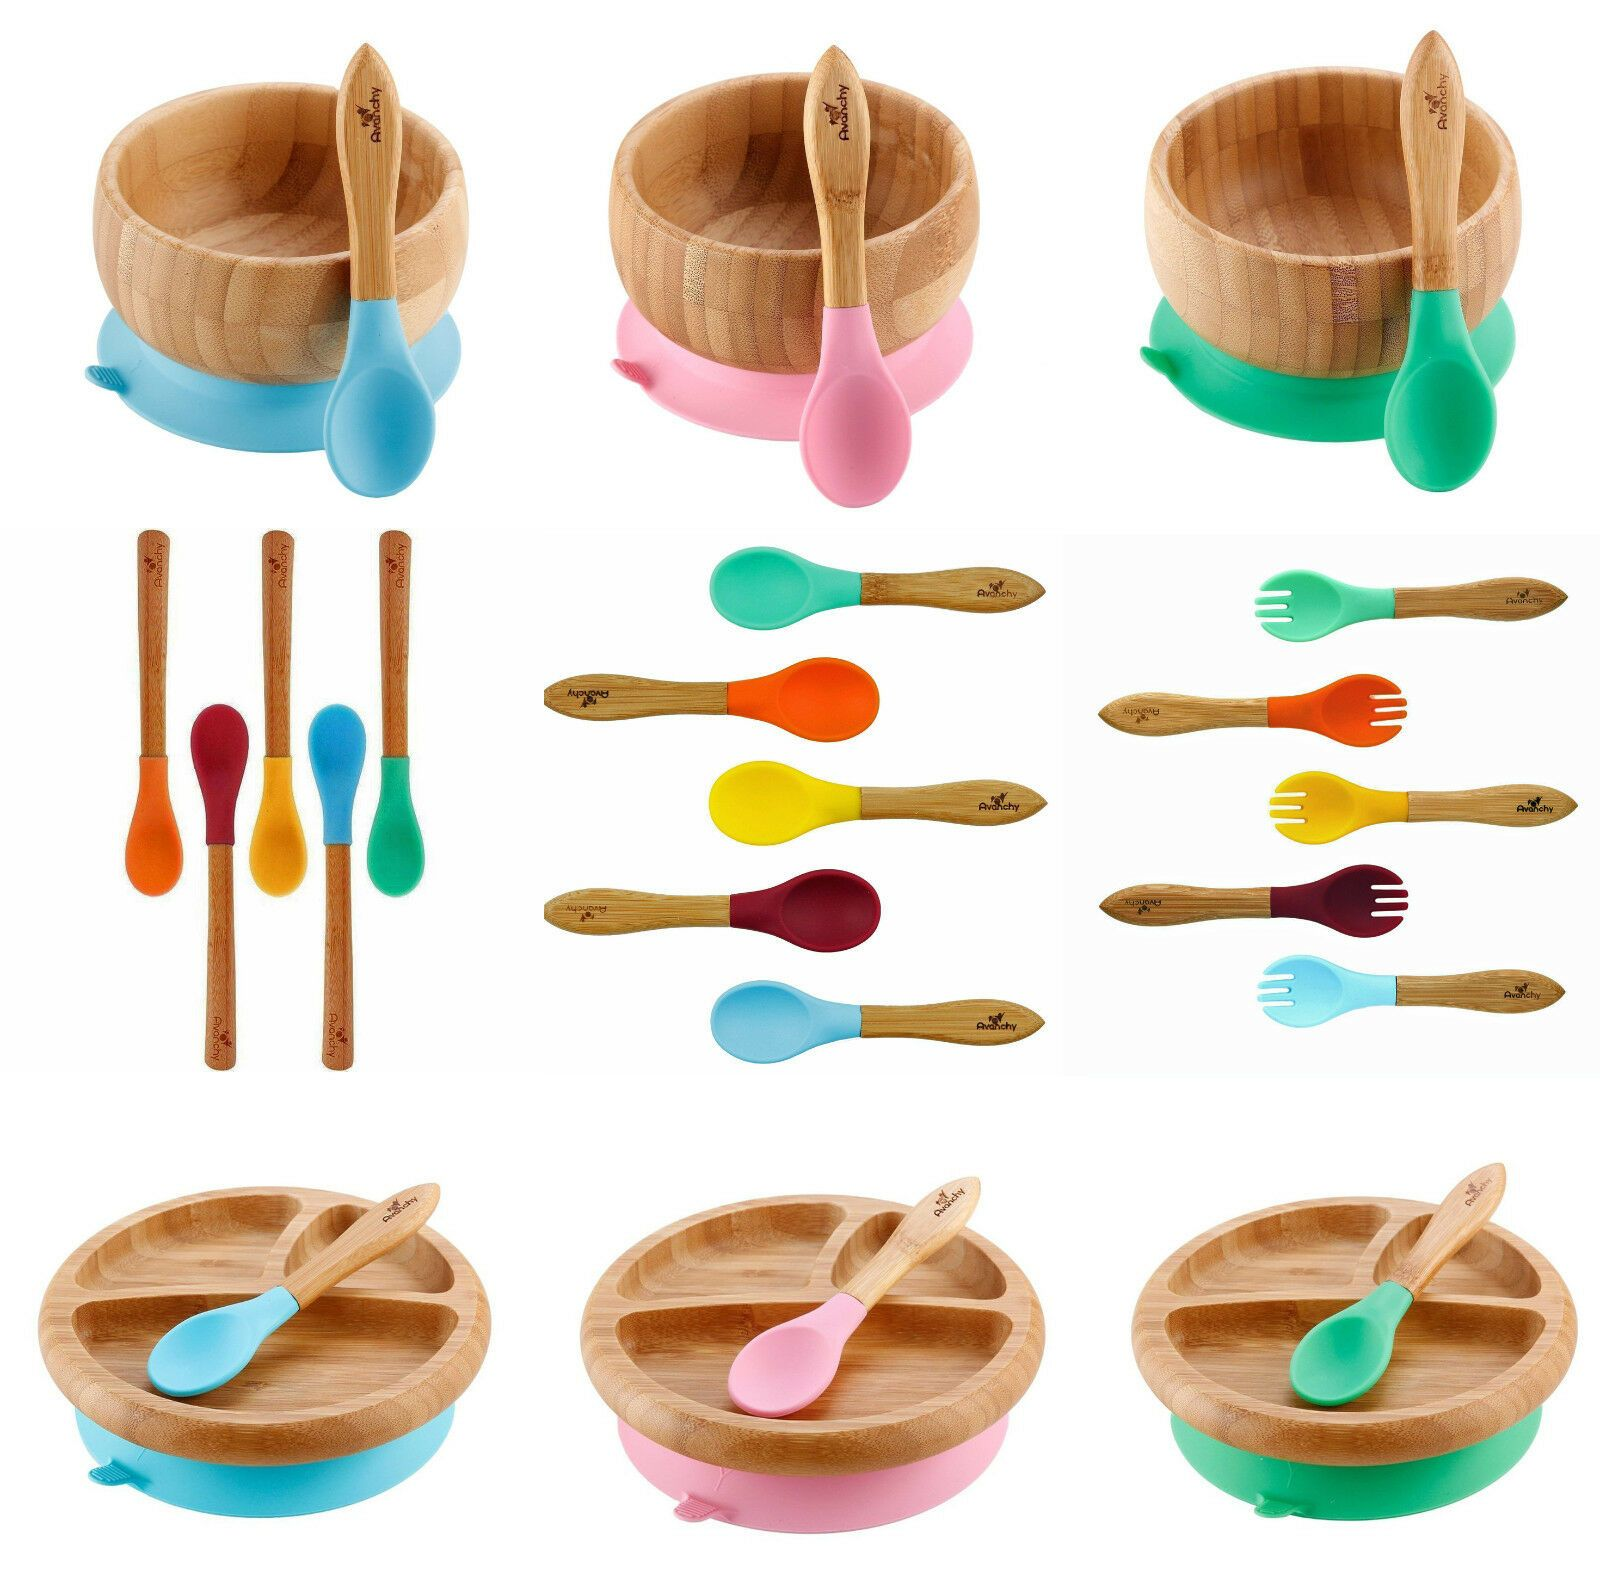 Cups Dishes And Utensils 157325 Avanchy Organic Bamboo Baby Bowl Or Plate With Suction Spoon Utensil Set Buy It No Baby Bowls Baby Utensils Baby Dishes